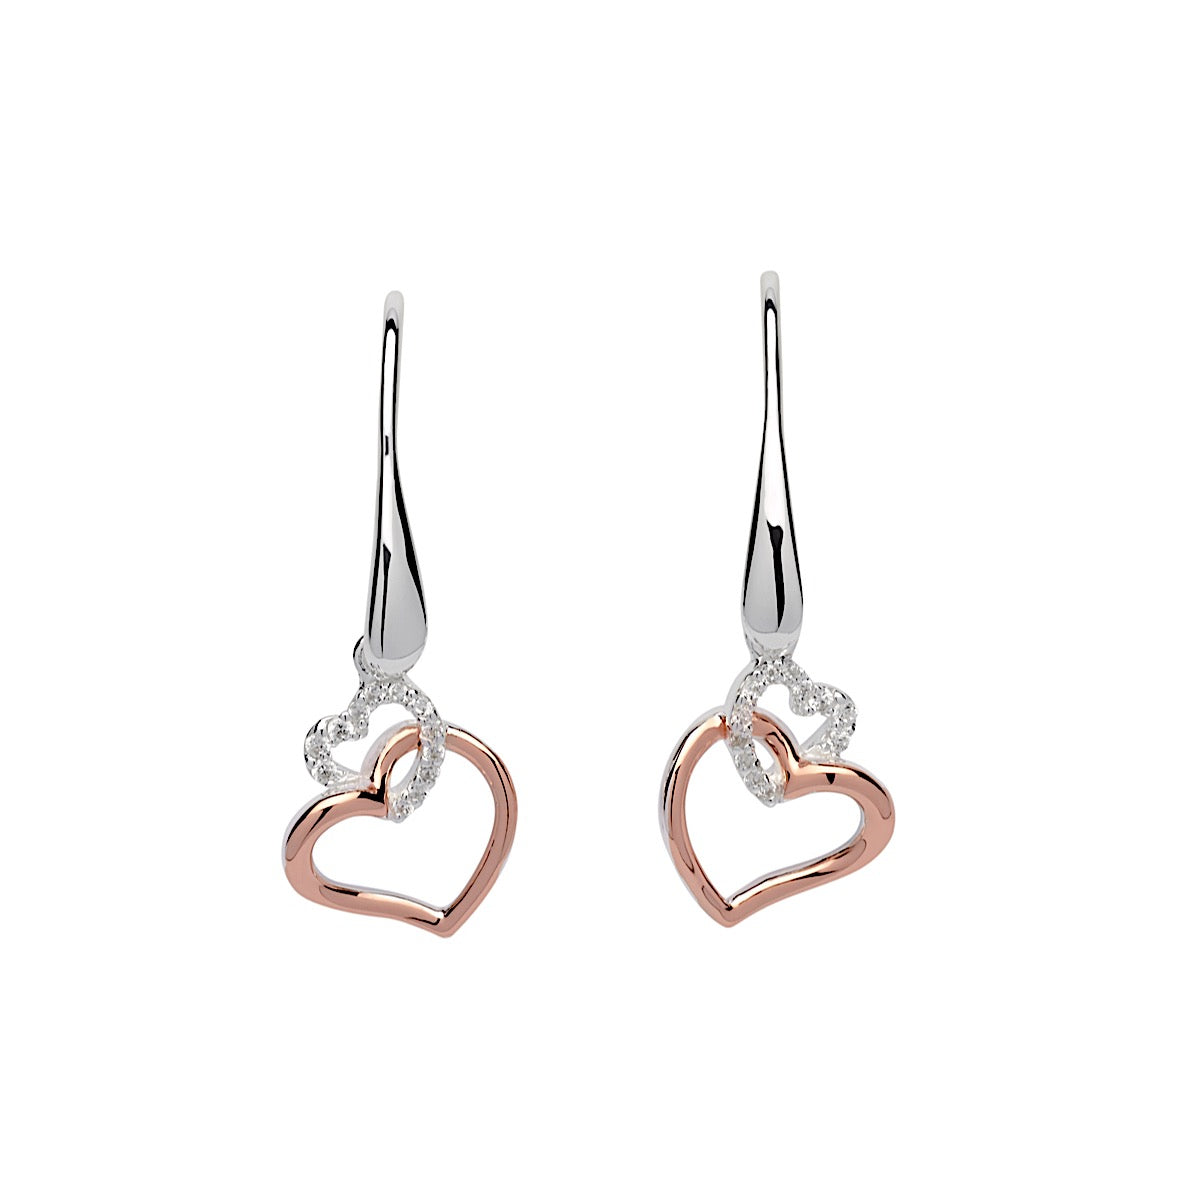 Unique Silver and Rose Gold CZ Linked Heart Earrings